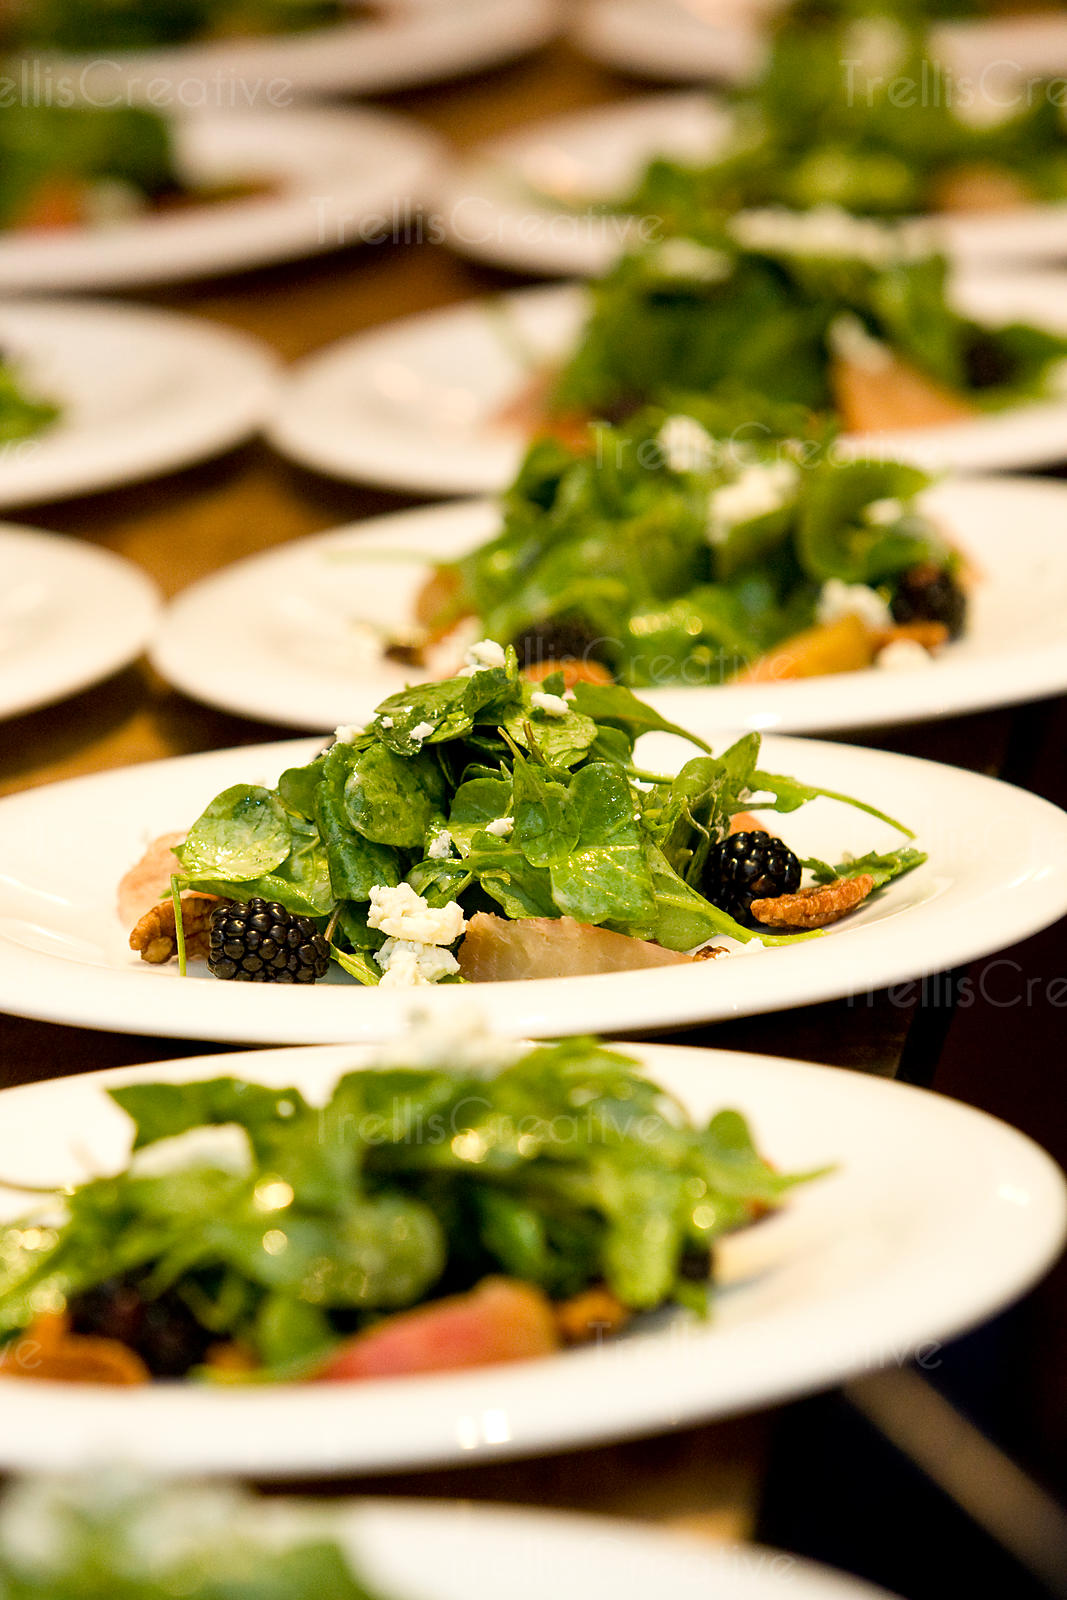 Many plates of spinach salad with goat cheese at a party